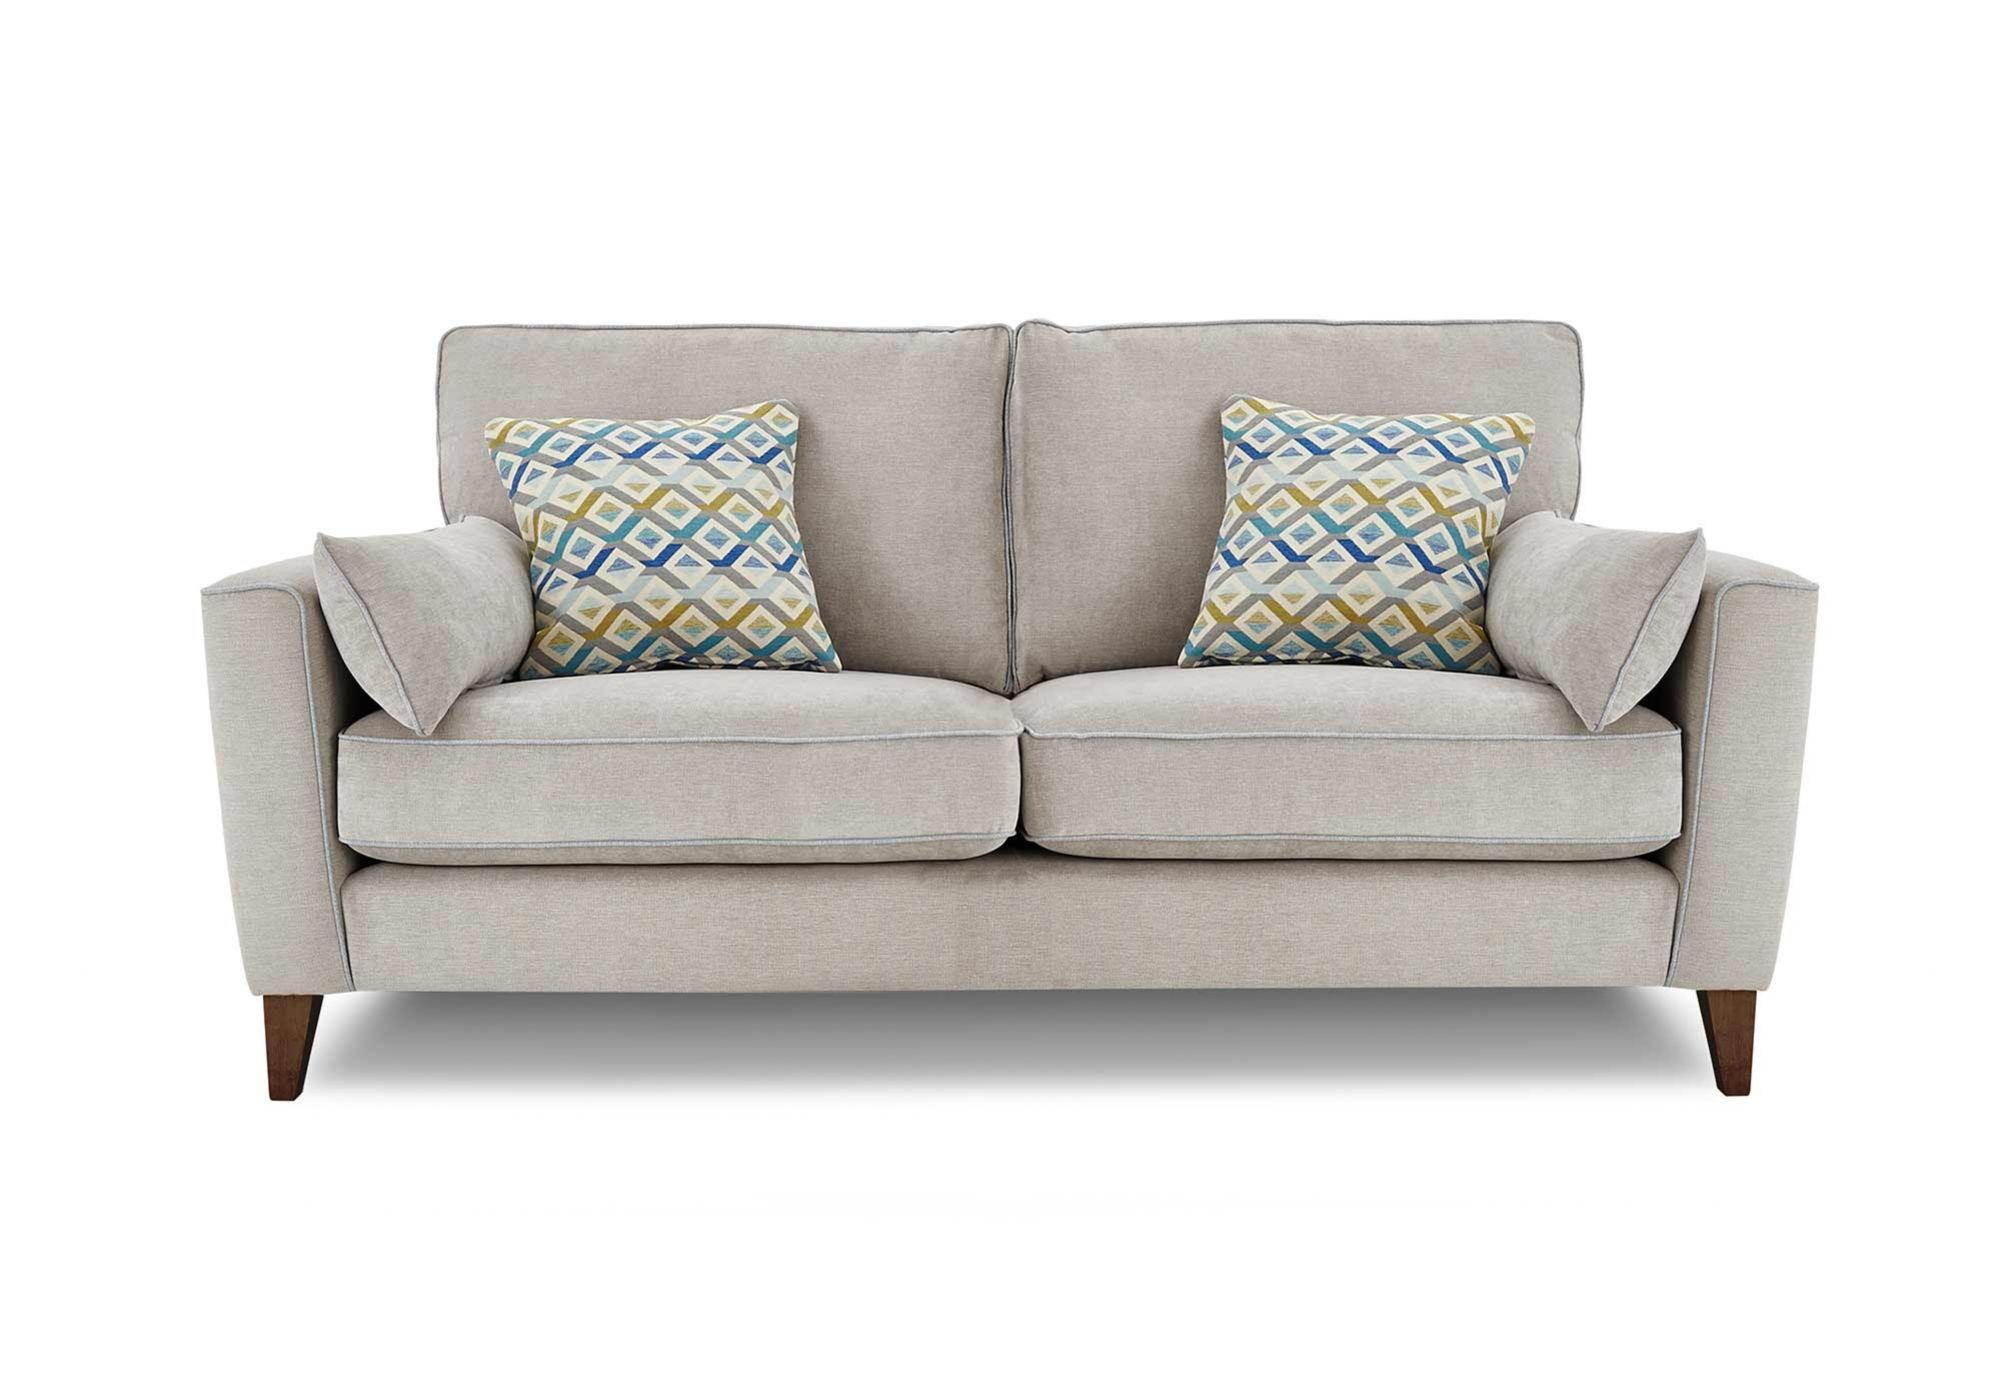 Two Seater Sofa Silfre inside 2 seat sofa on sale with